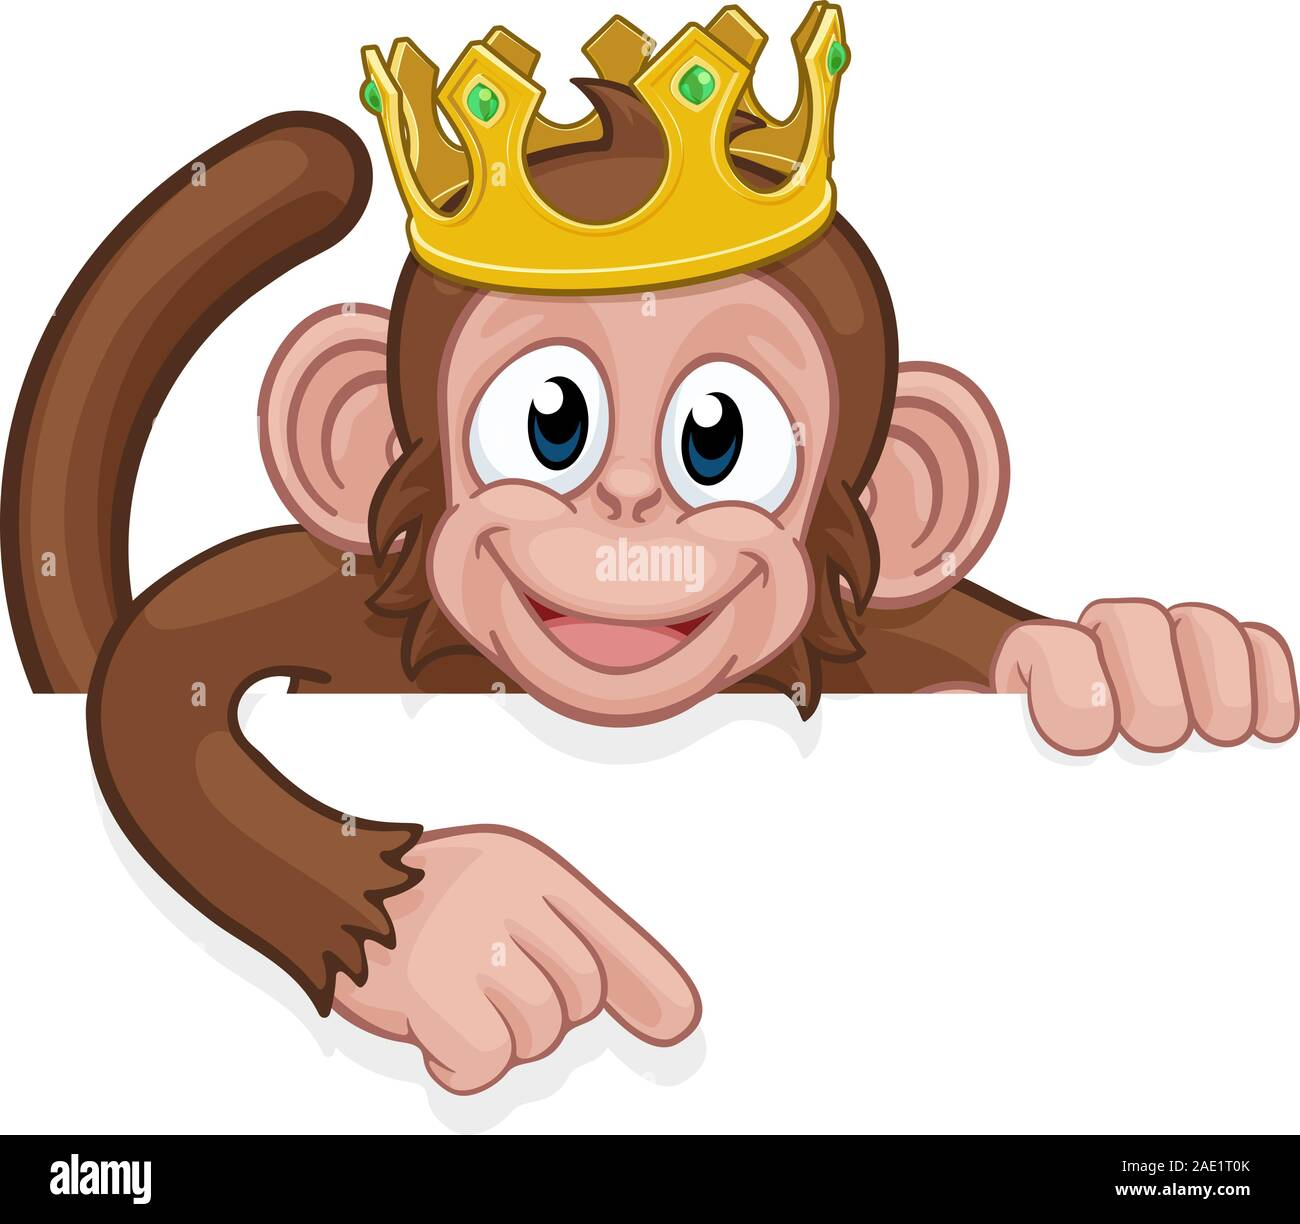 Monkey King Crown Cartoon Animal Pointing At Sign Stock Vector Image Art Alamy Black king and crown illustration, crown drawing king , crowns transparent background png clipart. https www alamy com monkey king crown cartoon animal pointing at sign image335642963 html